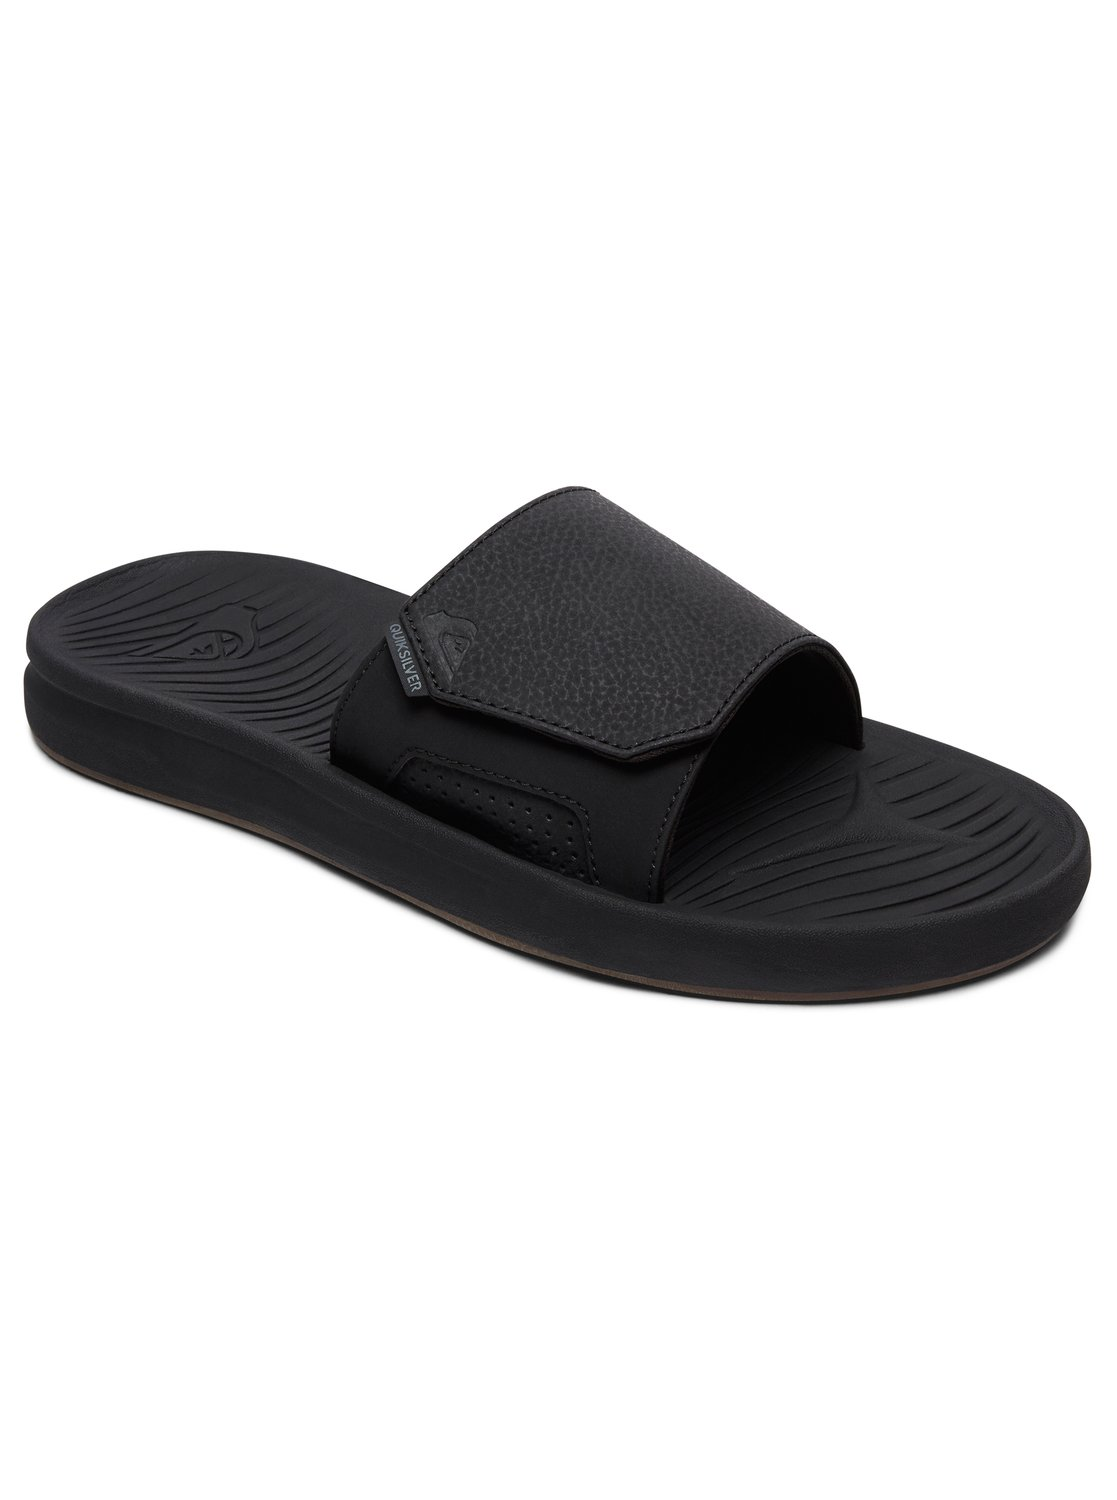 0d07ab40768ea4 0 Travel Oasis Slide - Slider Sandals for Men Black AQYL100586 Quiksilver